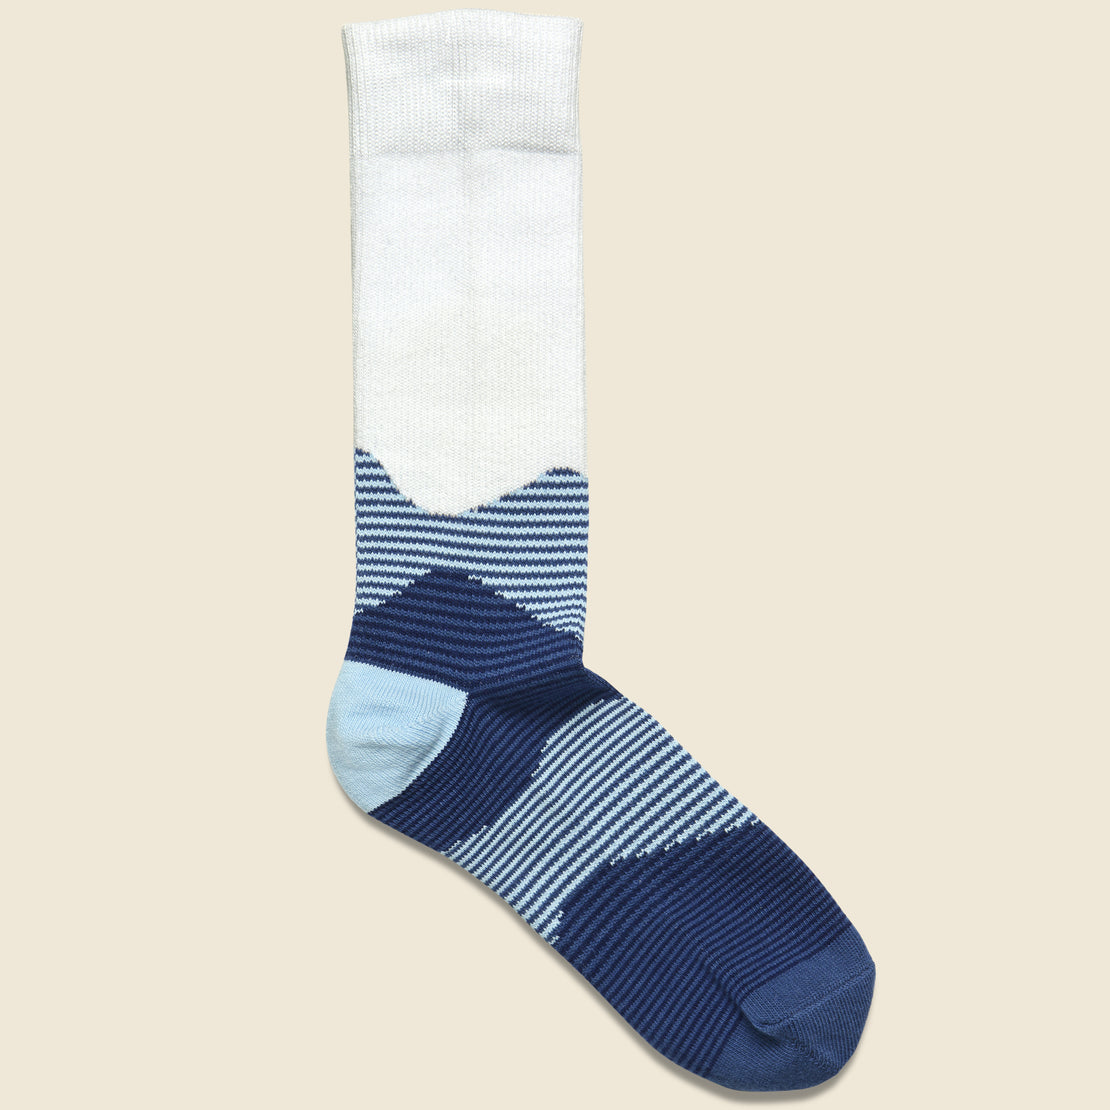 Richer Poorer Oakley Crew Sock - Blue Multi